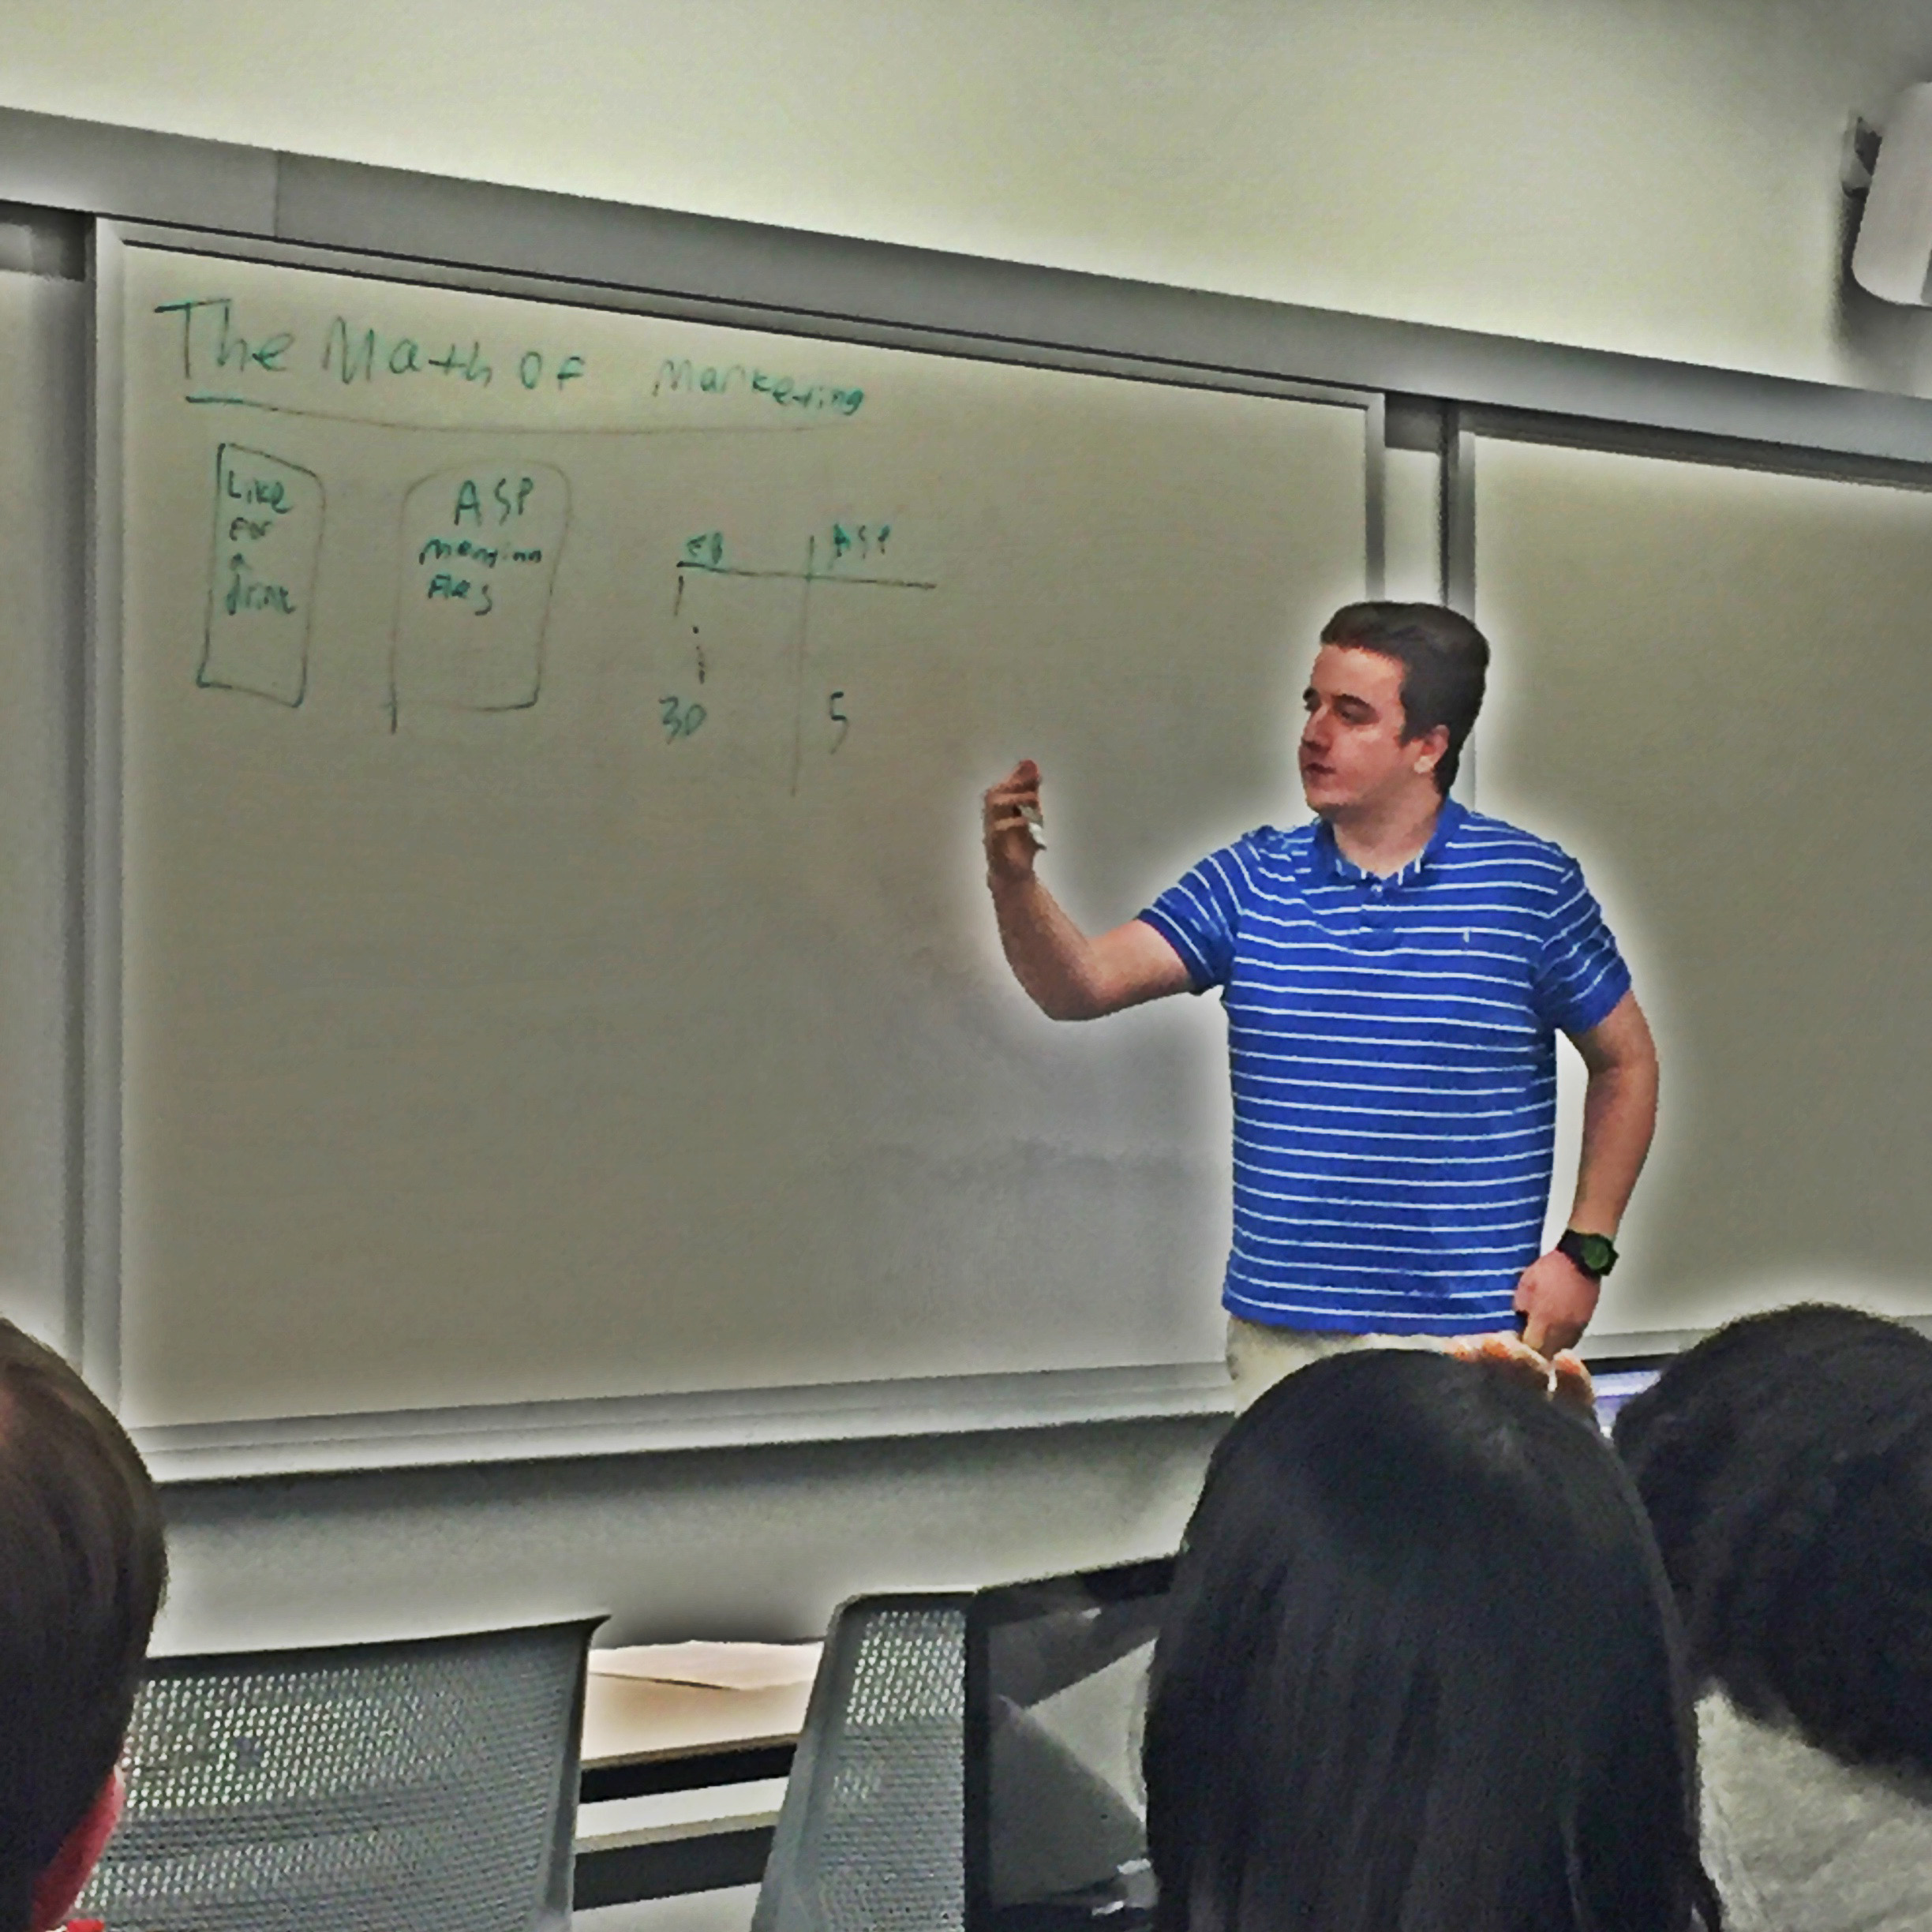 Ualbany student discussing the math of marketing with classmates in front of whiteboard with marketing formulas